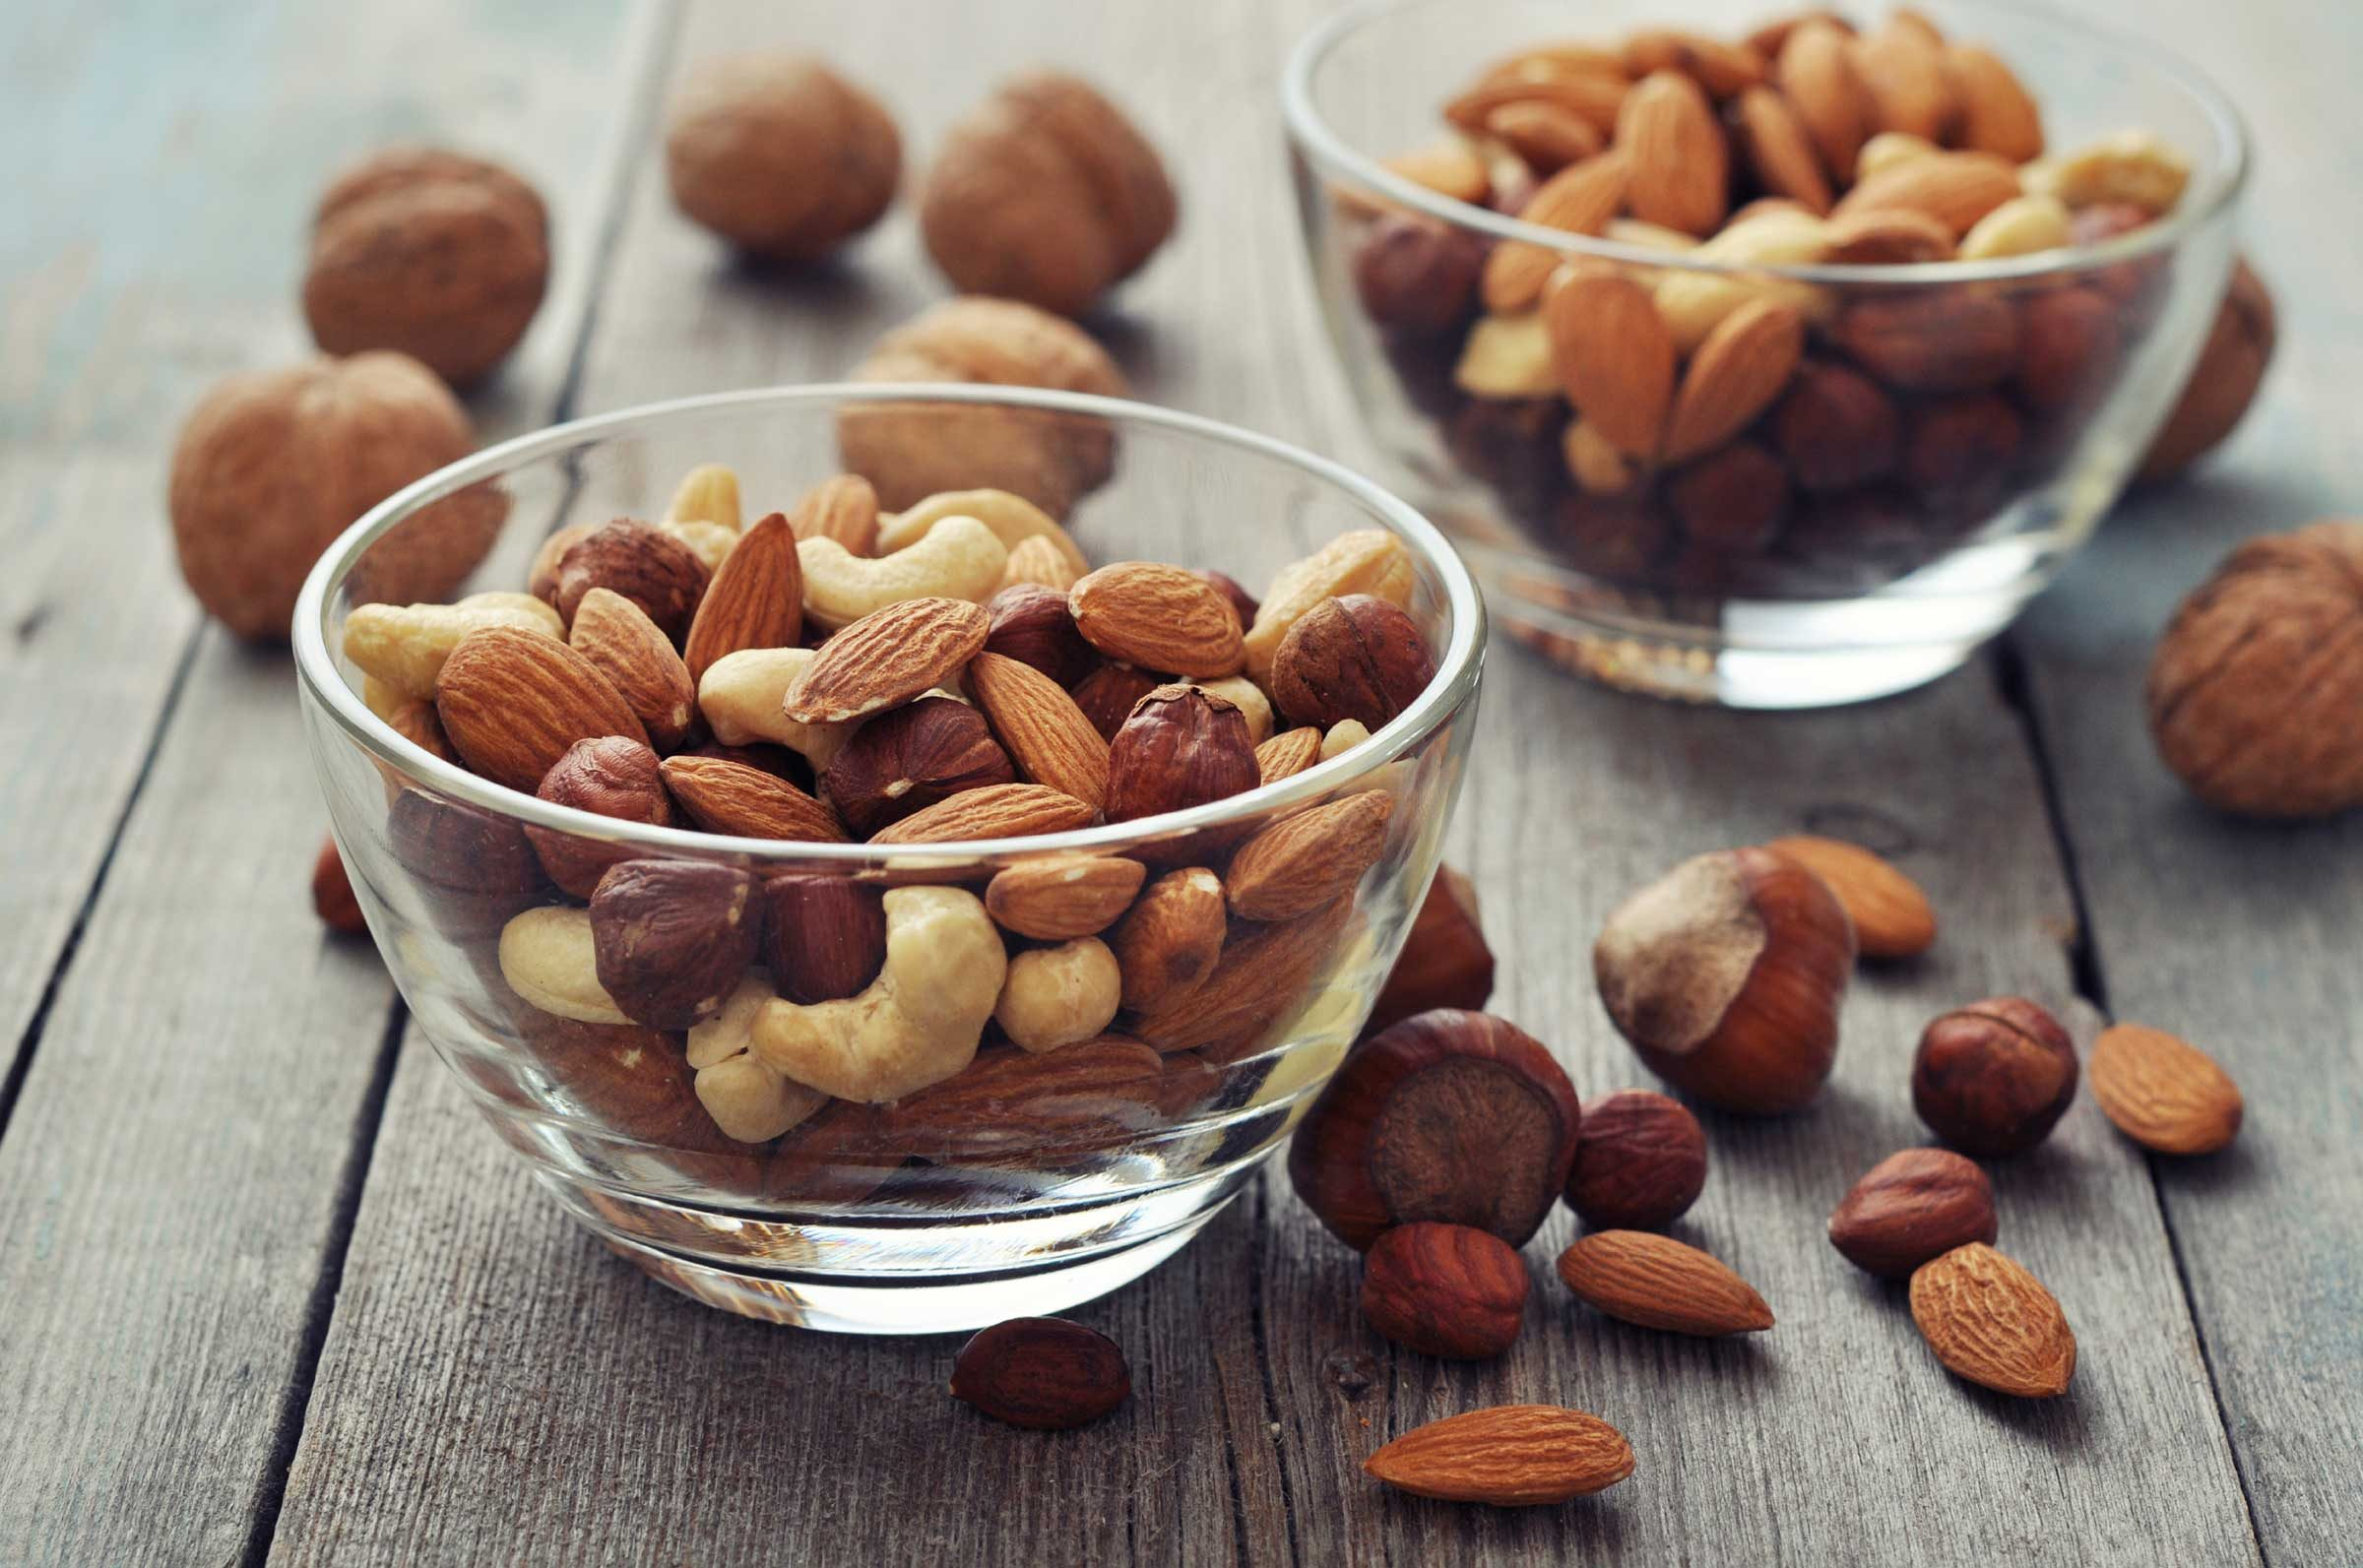 Top foods to increase libido or sexual desire my health tips - Vitamin E And Sexual Function